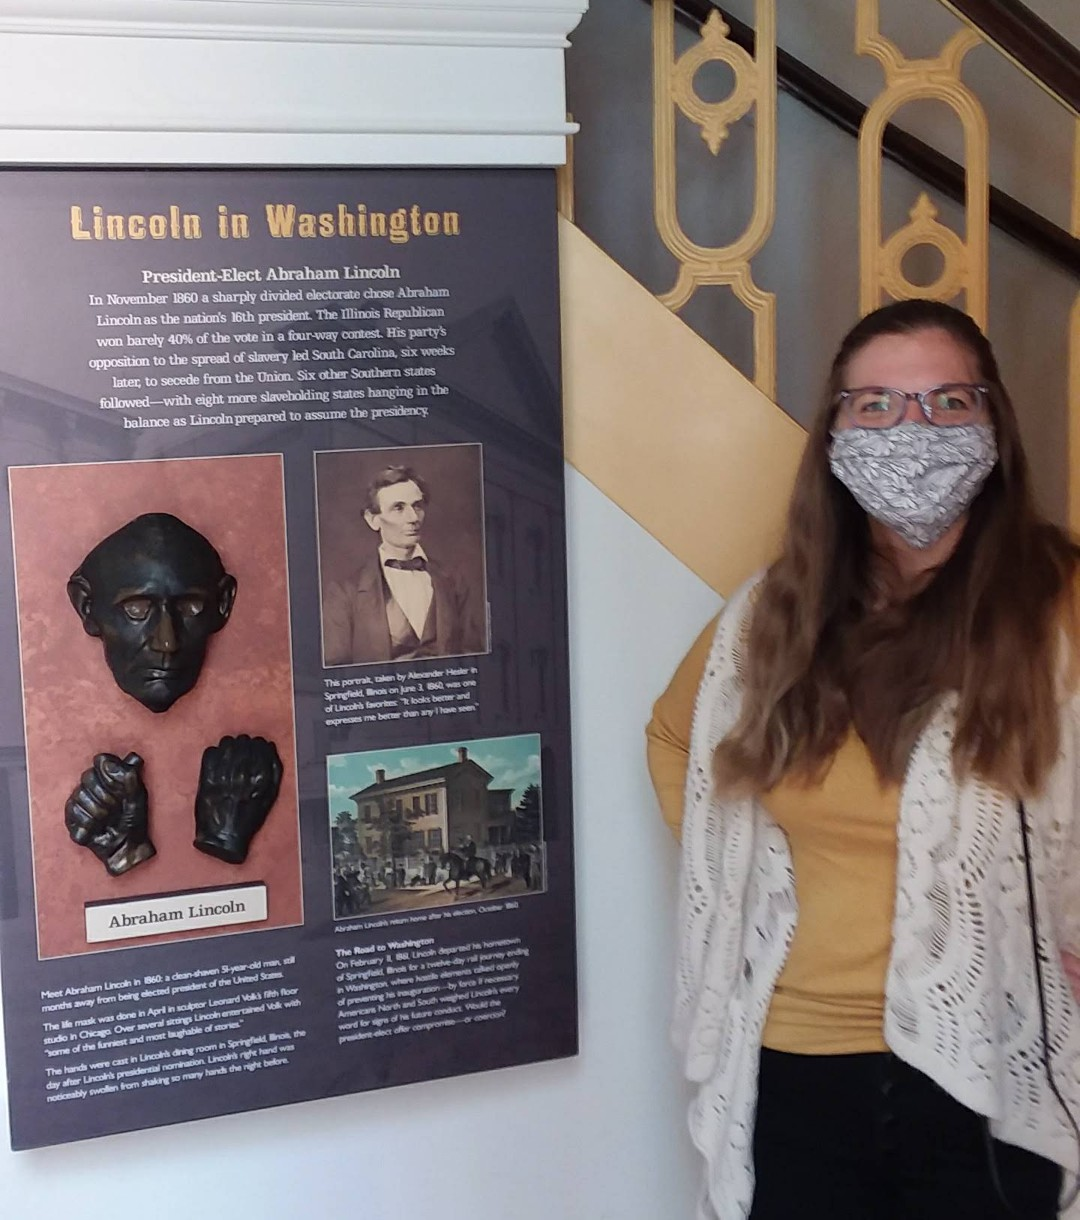 Taryn stands next to a museum panel showing a life mask of Abraham Lincoln.